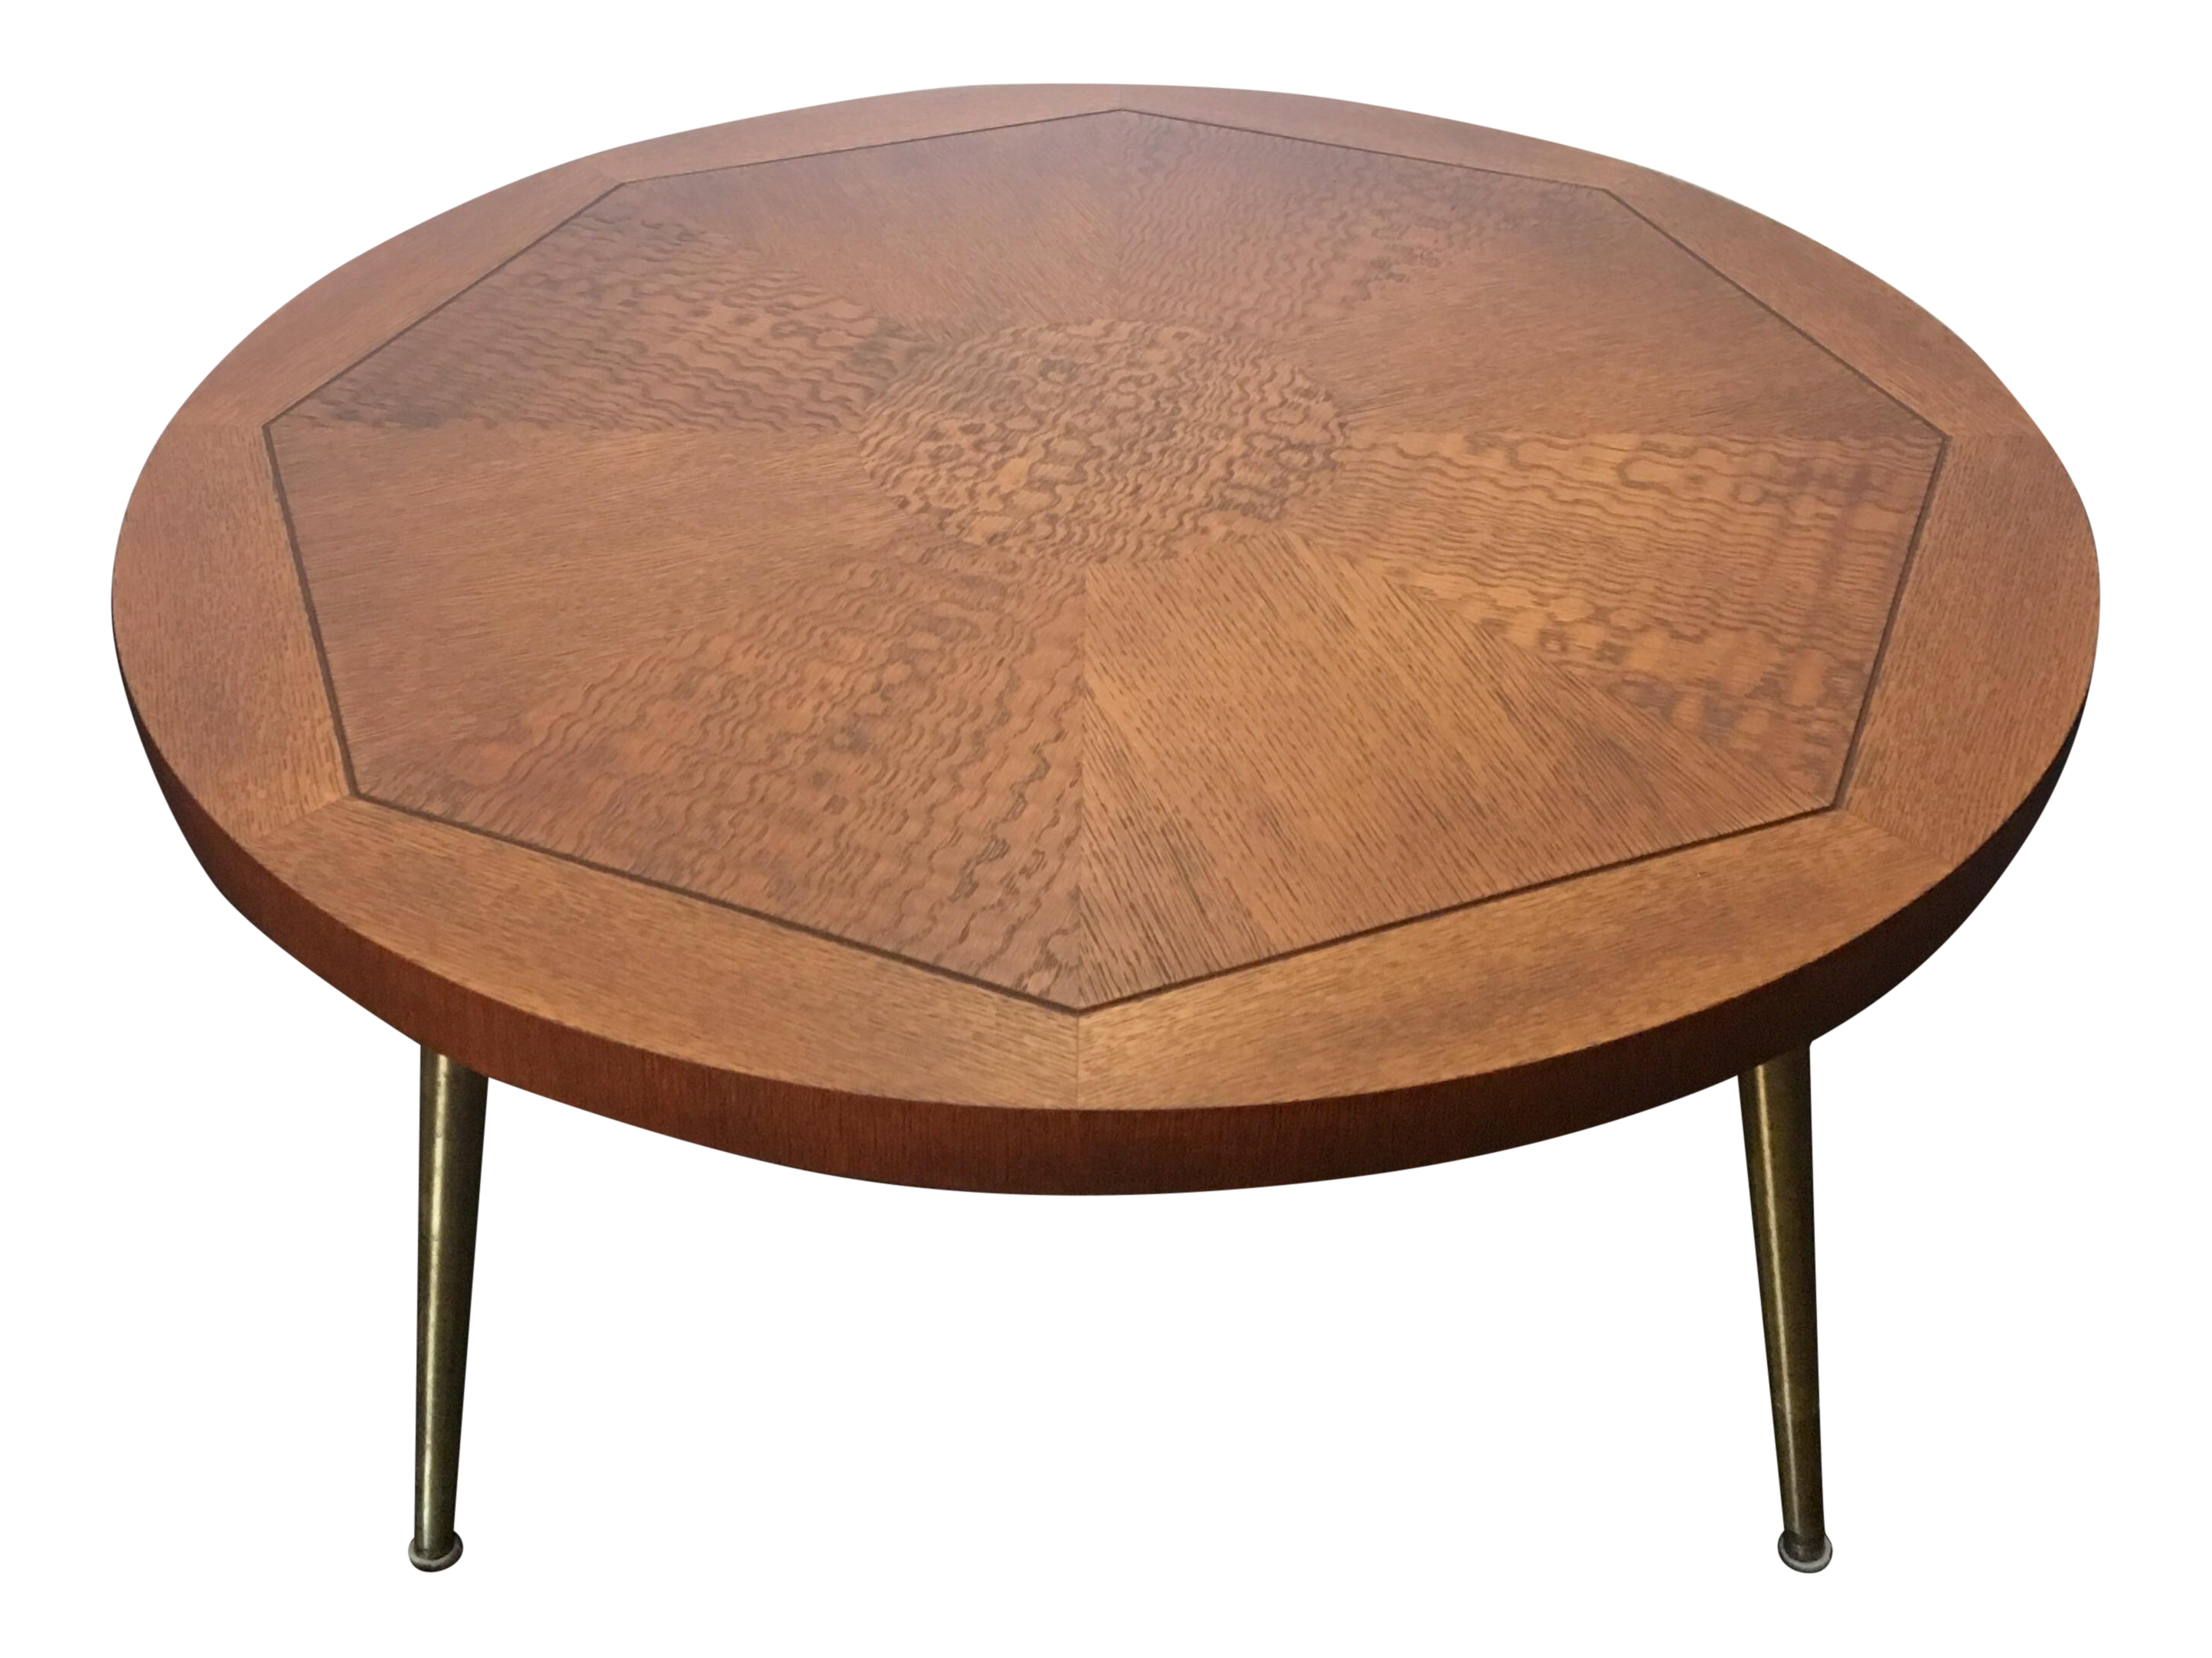 1954 Vintage Lane Walnut Parquetry Coffee Table with Brass Legs. Vintage   Used Lane Furniture   Decor   Chairish